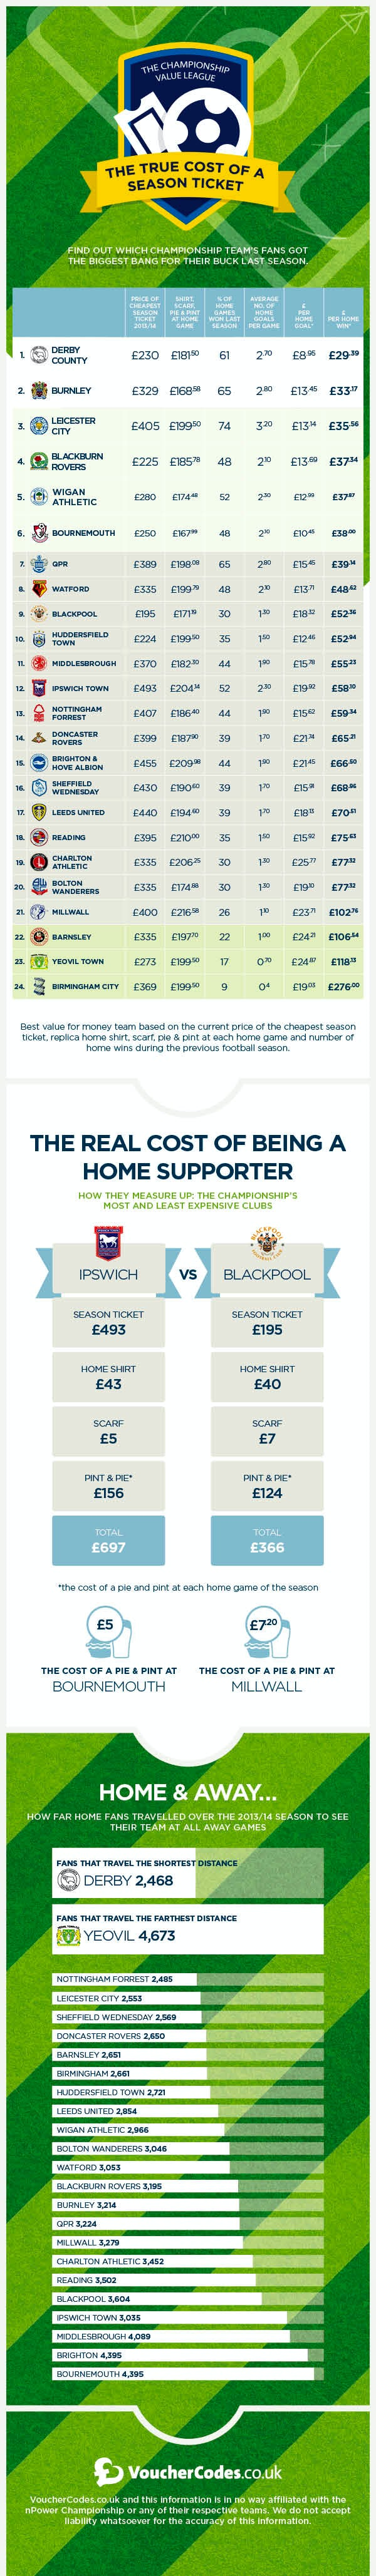 An infographic showing the Championship Value League Table by VoucherCodes.co.uk